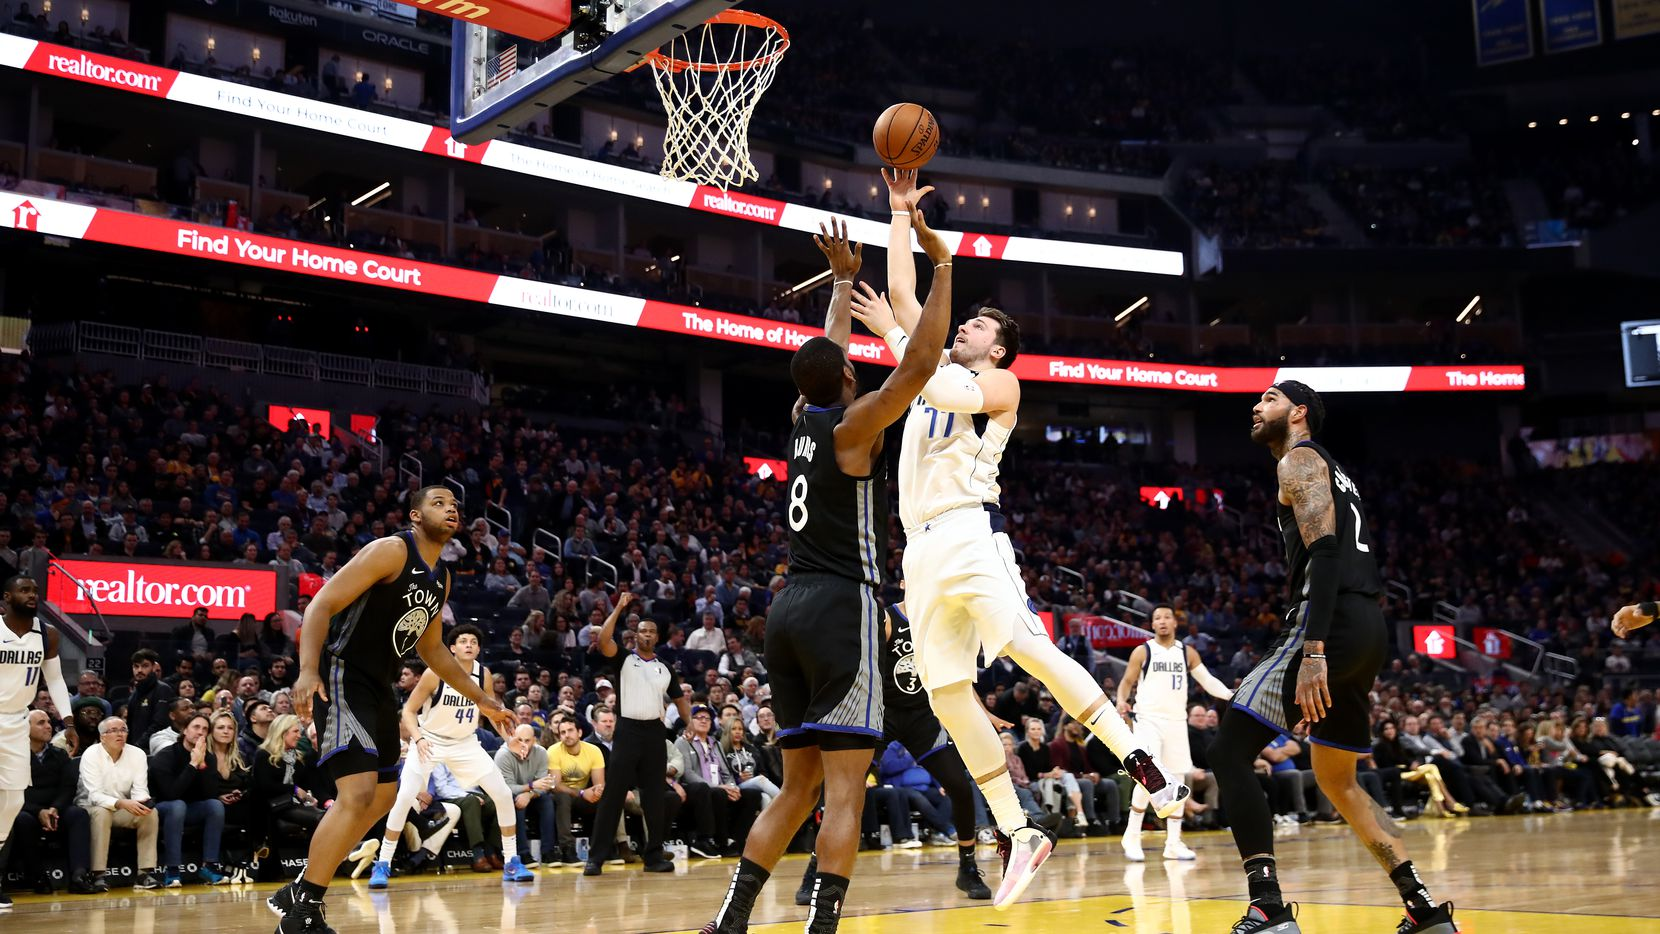 SAN FRANCISCO, CALIFORNIA - JANUARY 14:  Luka Doncic #77 of the Dallas Mavericks goes up for a shot on Alec Burks #8 of the Golden State Warriors at Chase Center on January 14, 2020 in San Francisco, California.